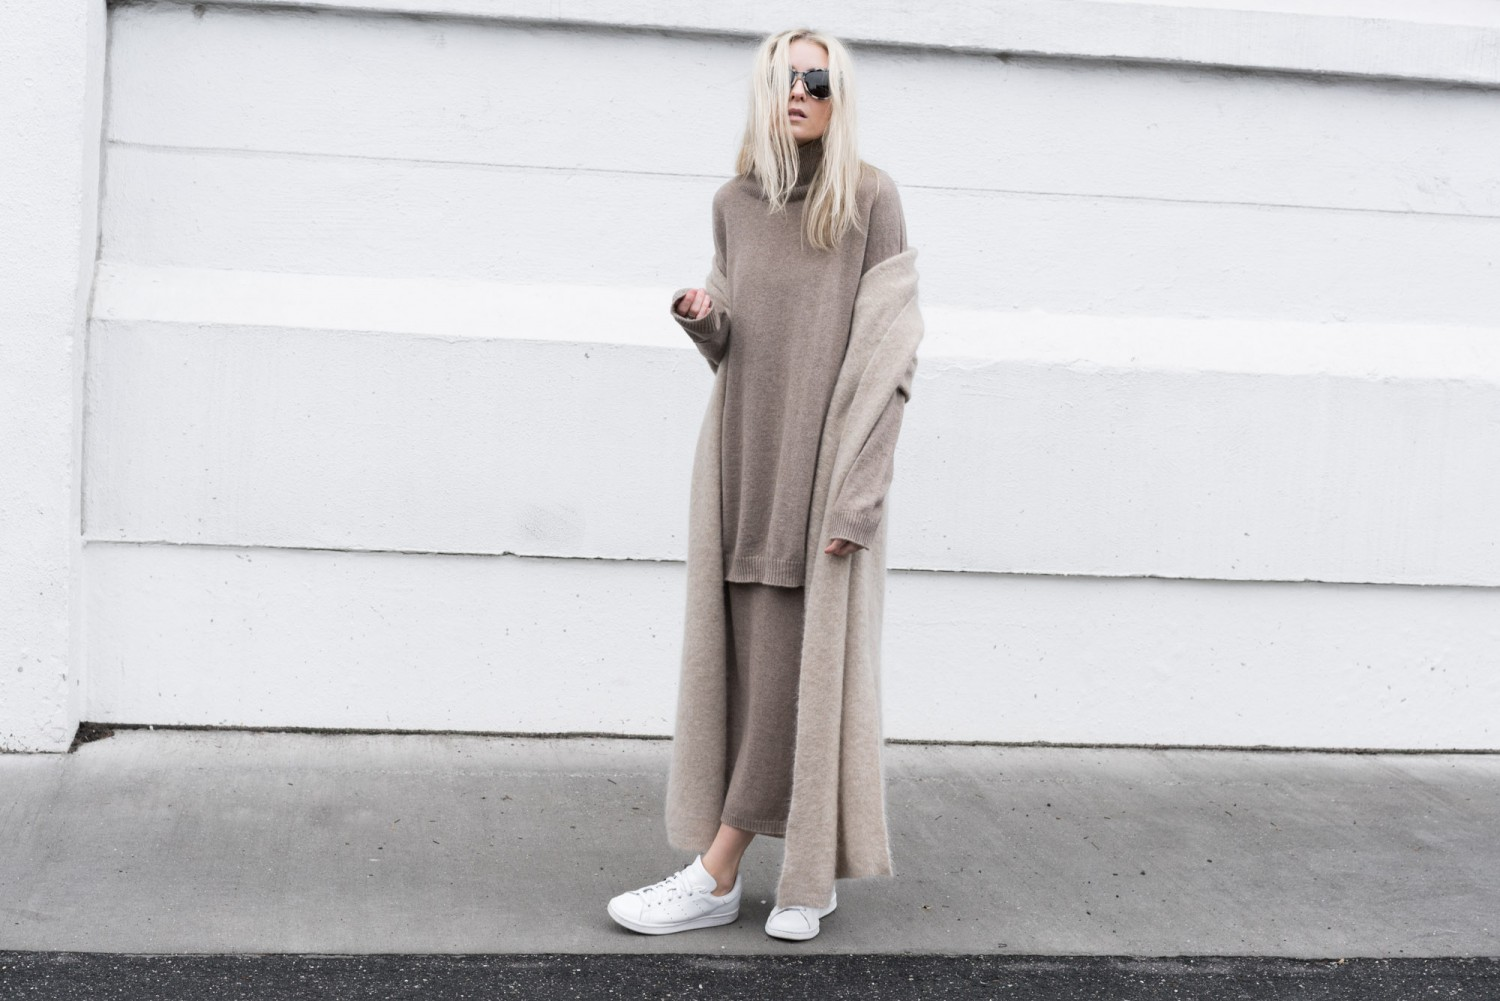 figtnyc fashion blogger